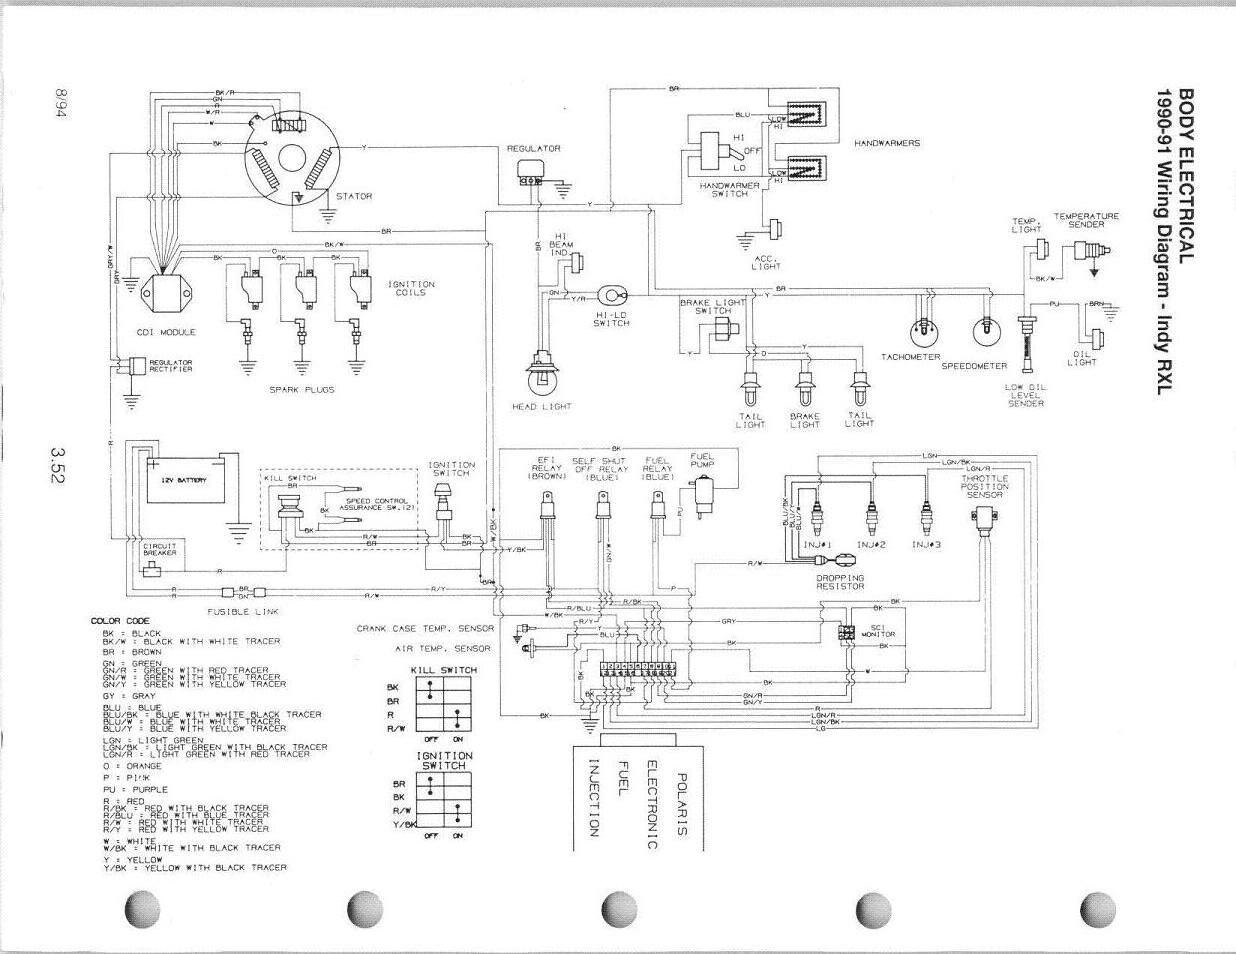 193236 92 indy 500 sks efi ecu 201112554231109_18890 2005 polaris ranger 500 wiring diagram wirdig readingrat net 2000 polaris trailblazer 250 wiring diagram at soozxer.org